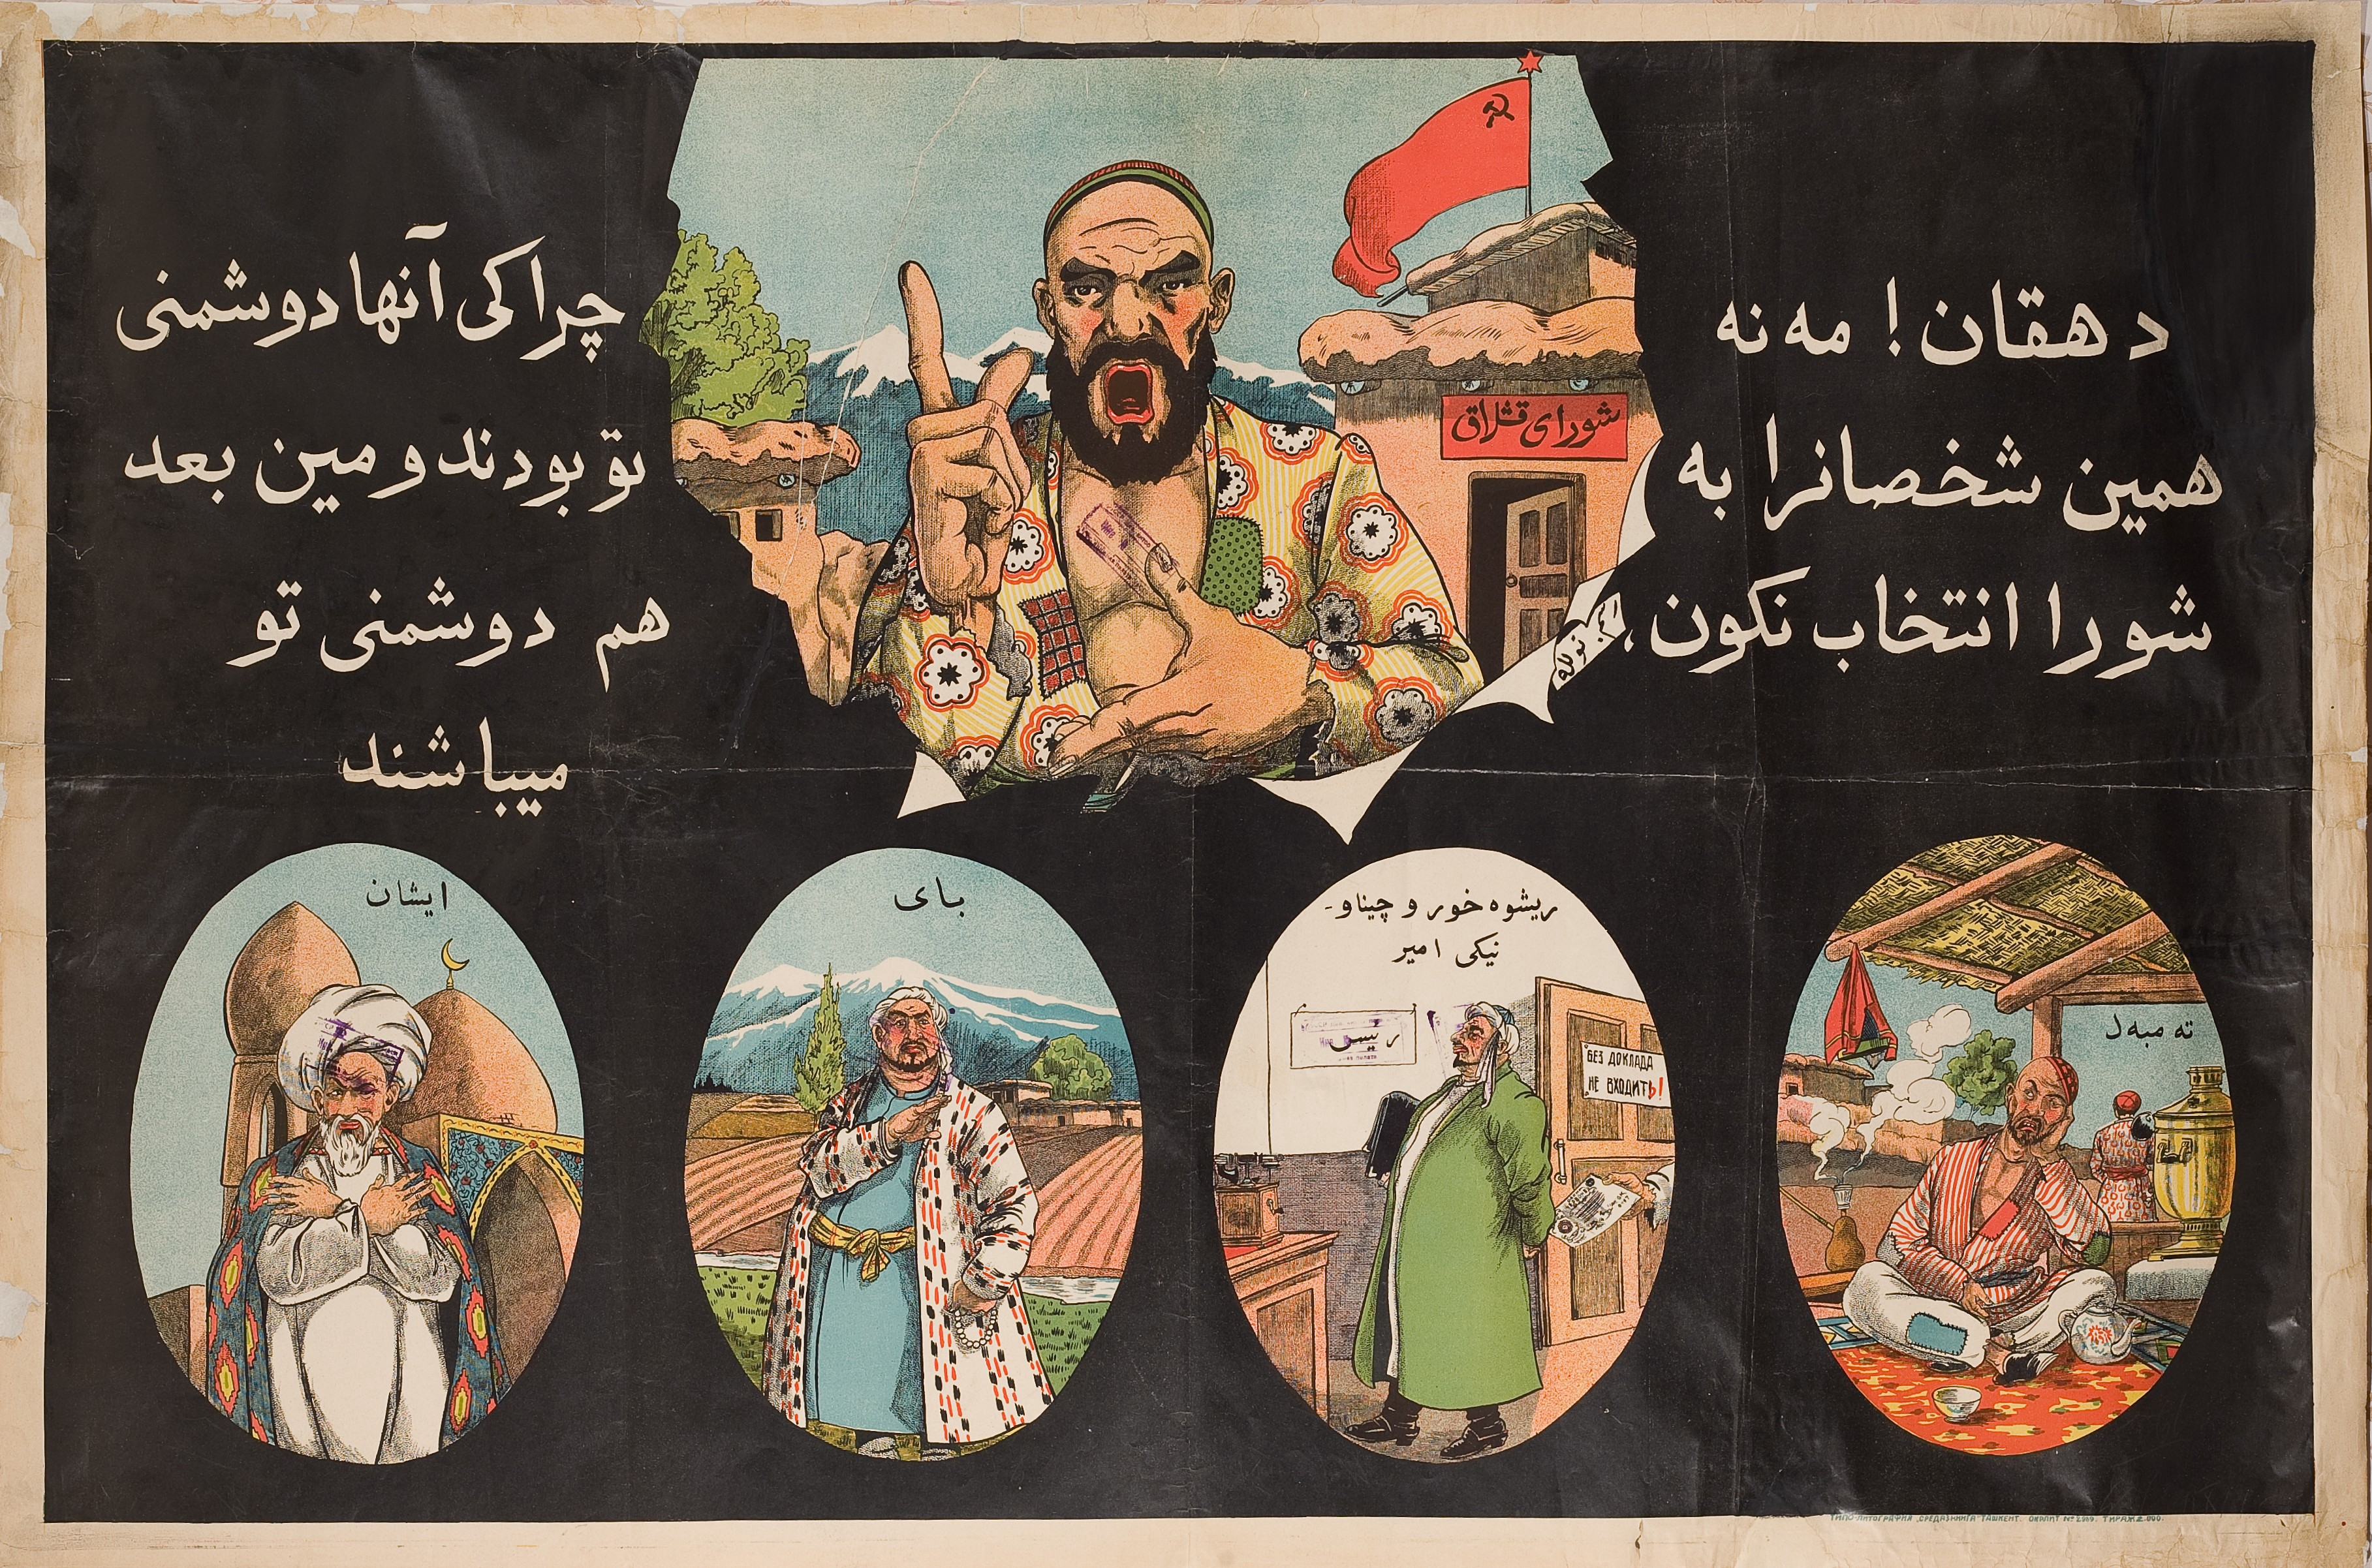 An early Soviet propaganda poster telling peasants not to vote for religious authorities, landlords or capitalists.